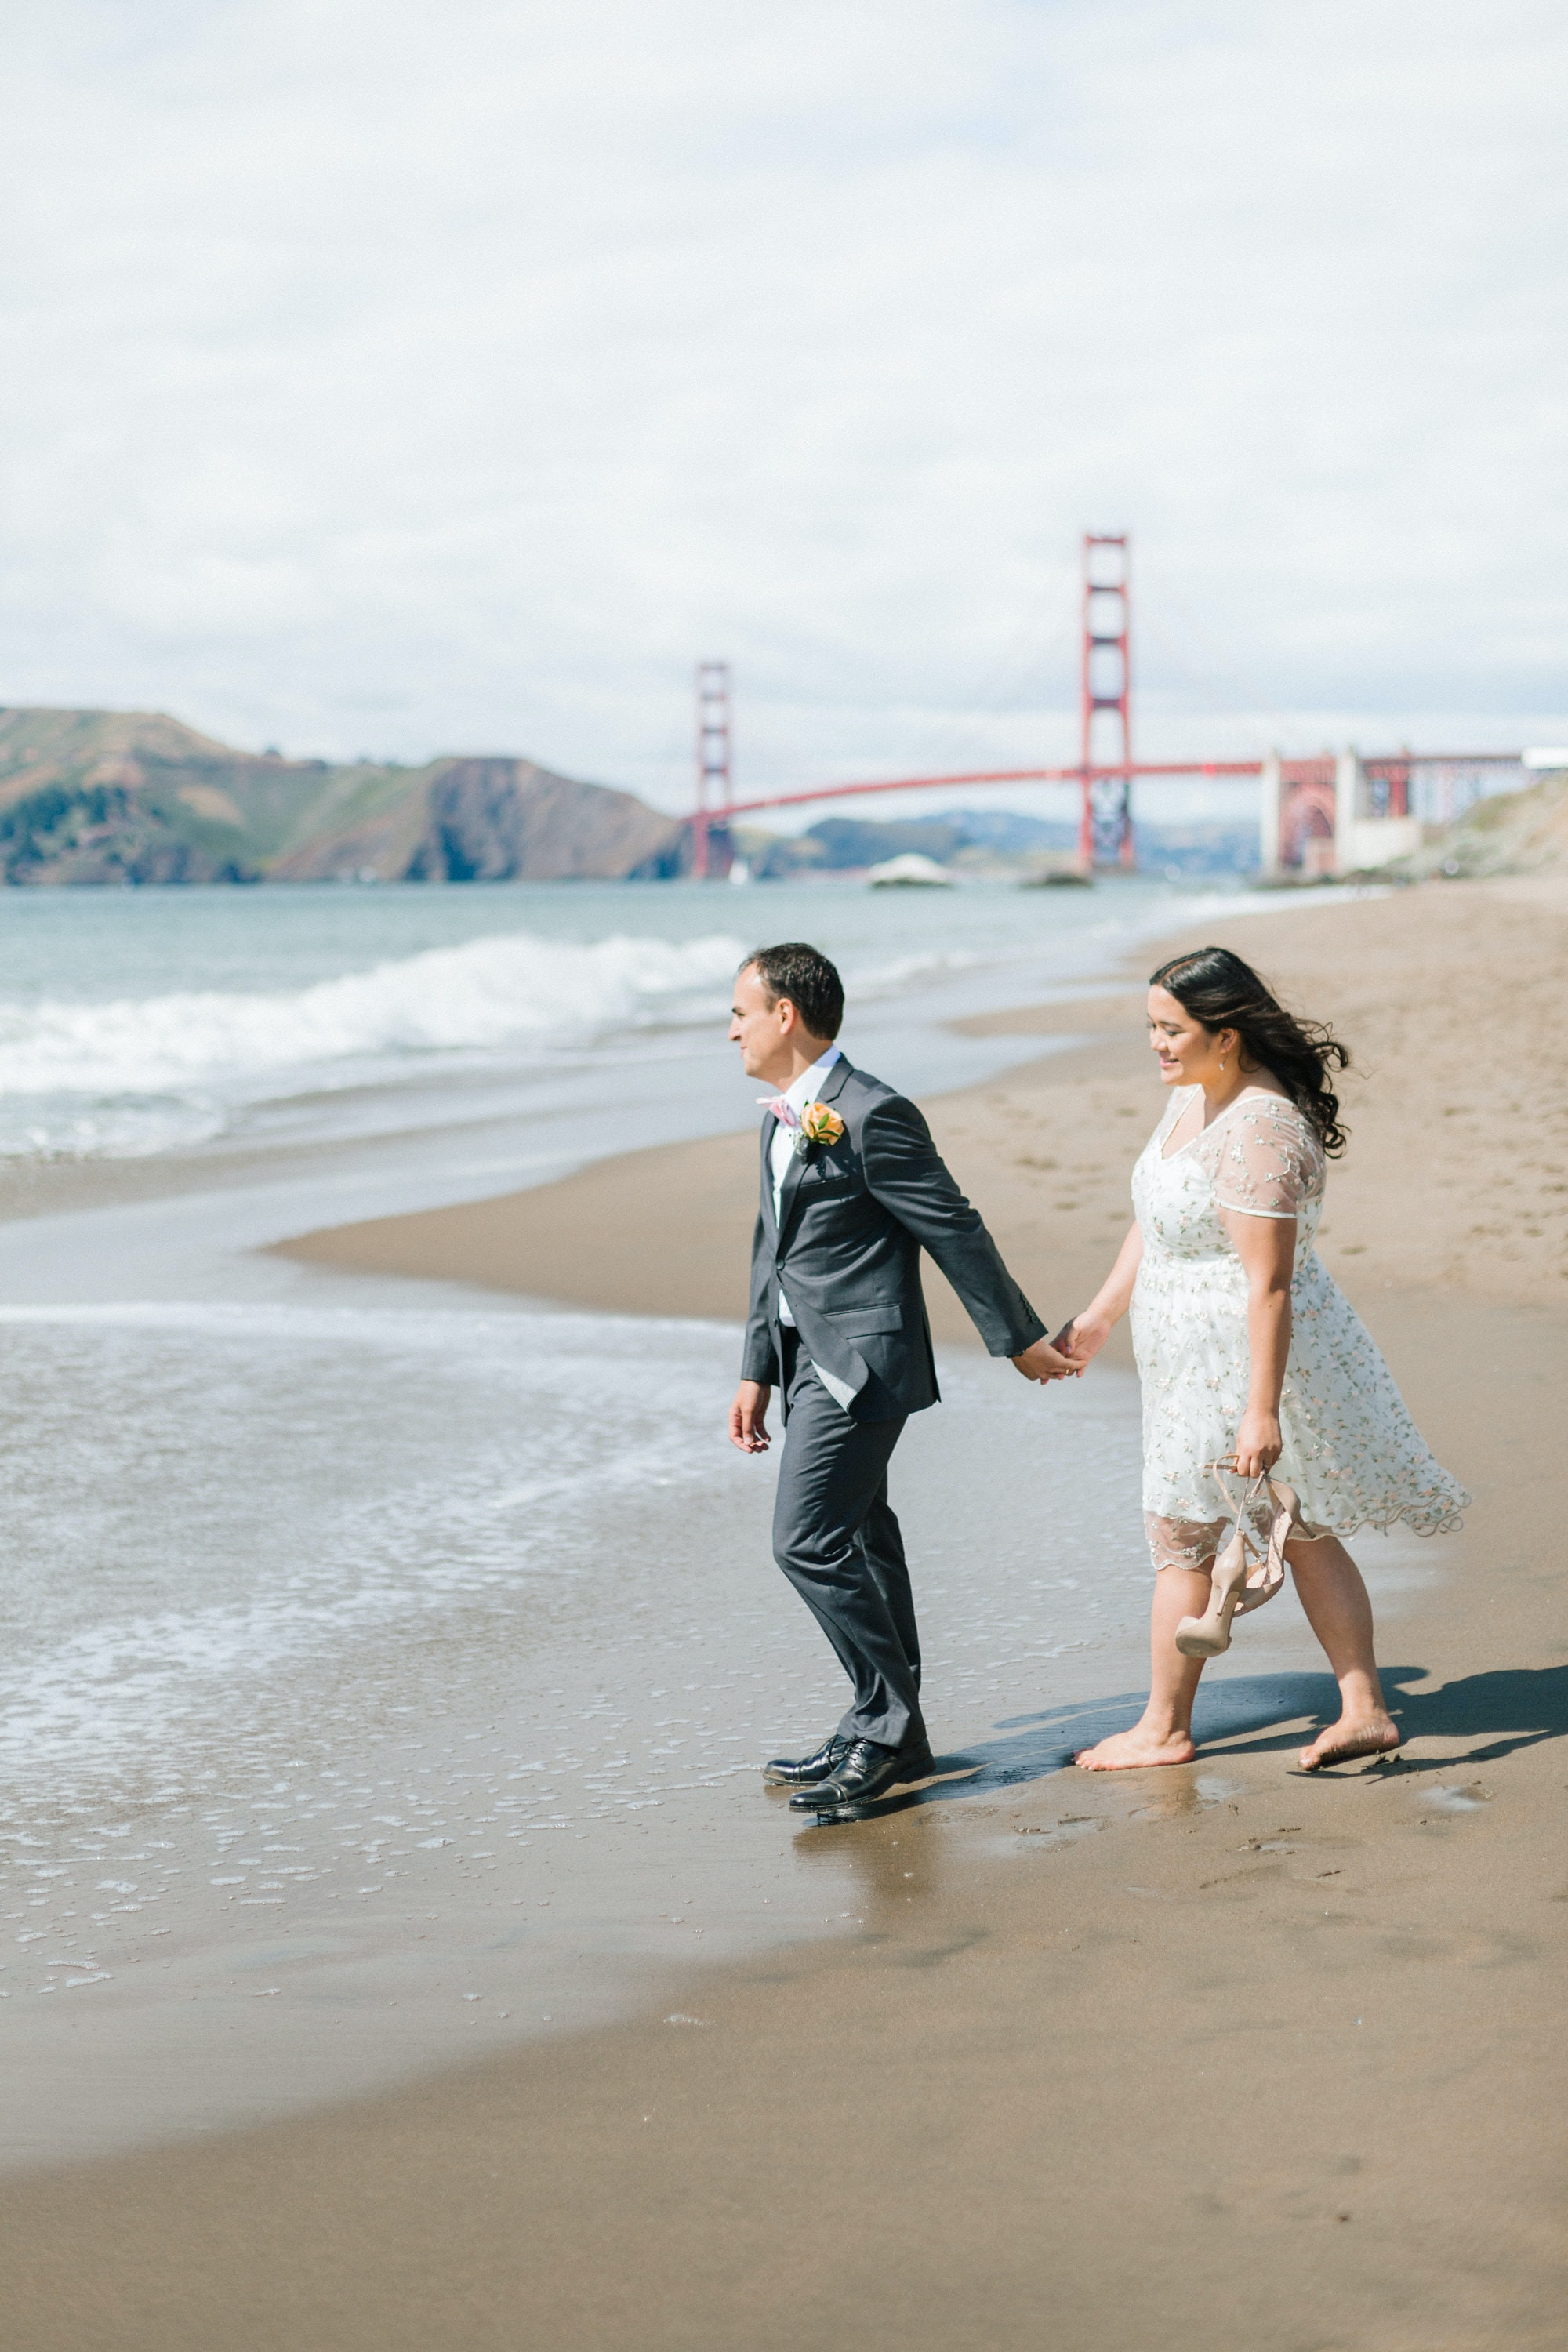 couple walking on seashore near Golden Gate Bridge, San Francisco